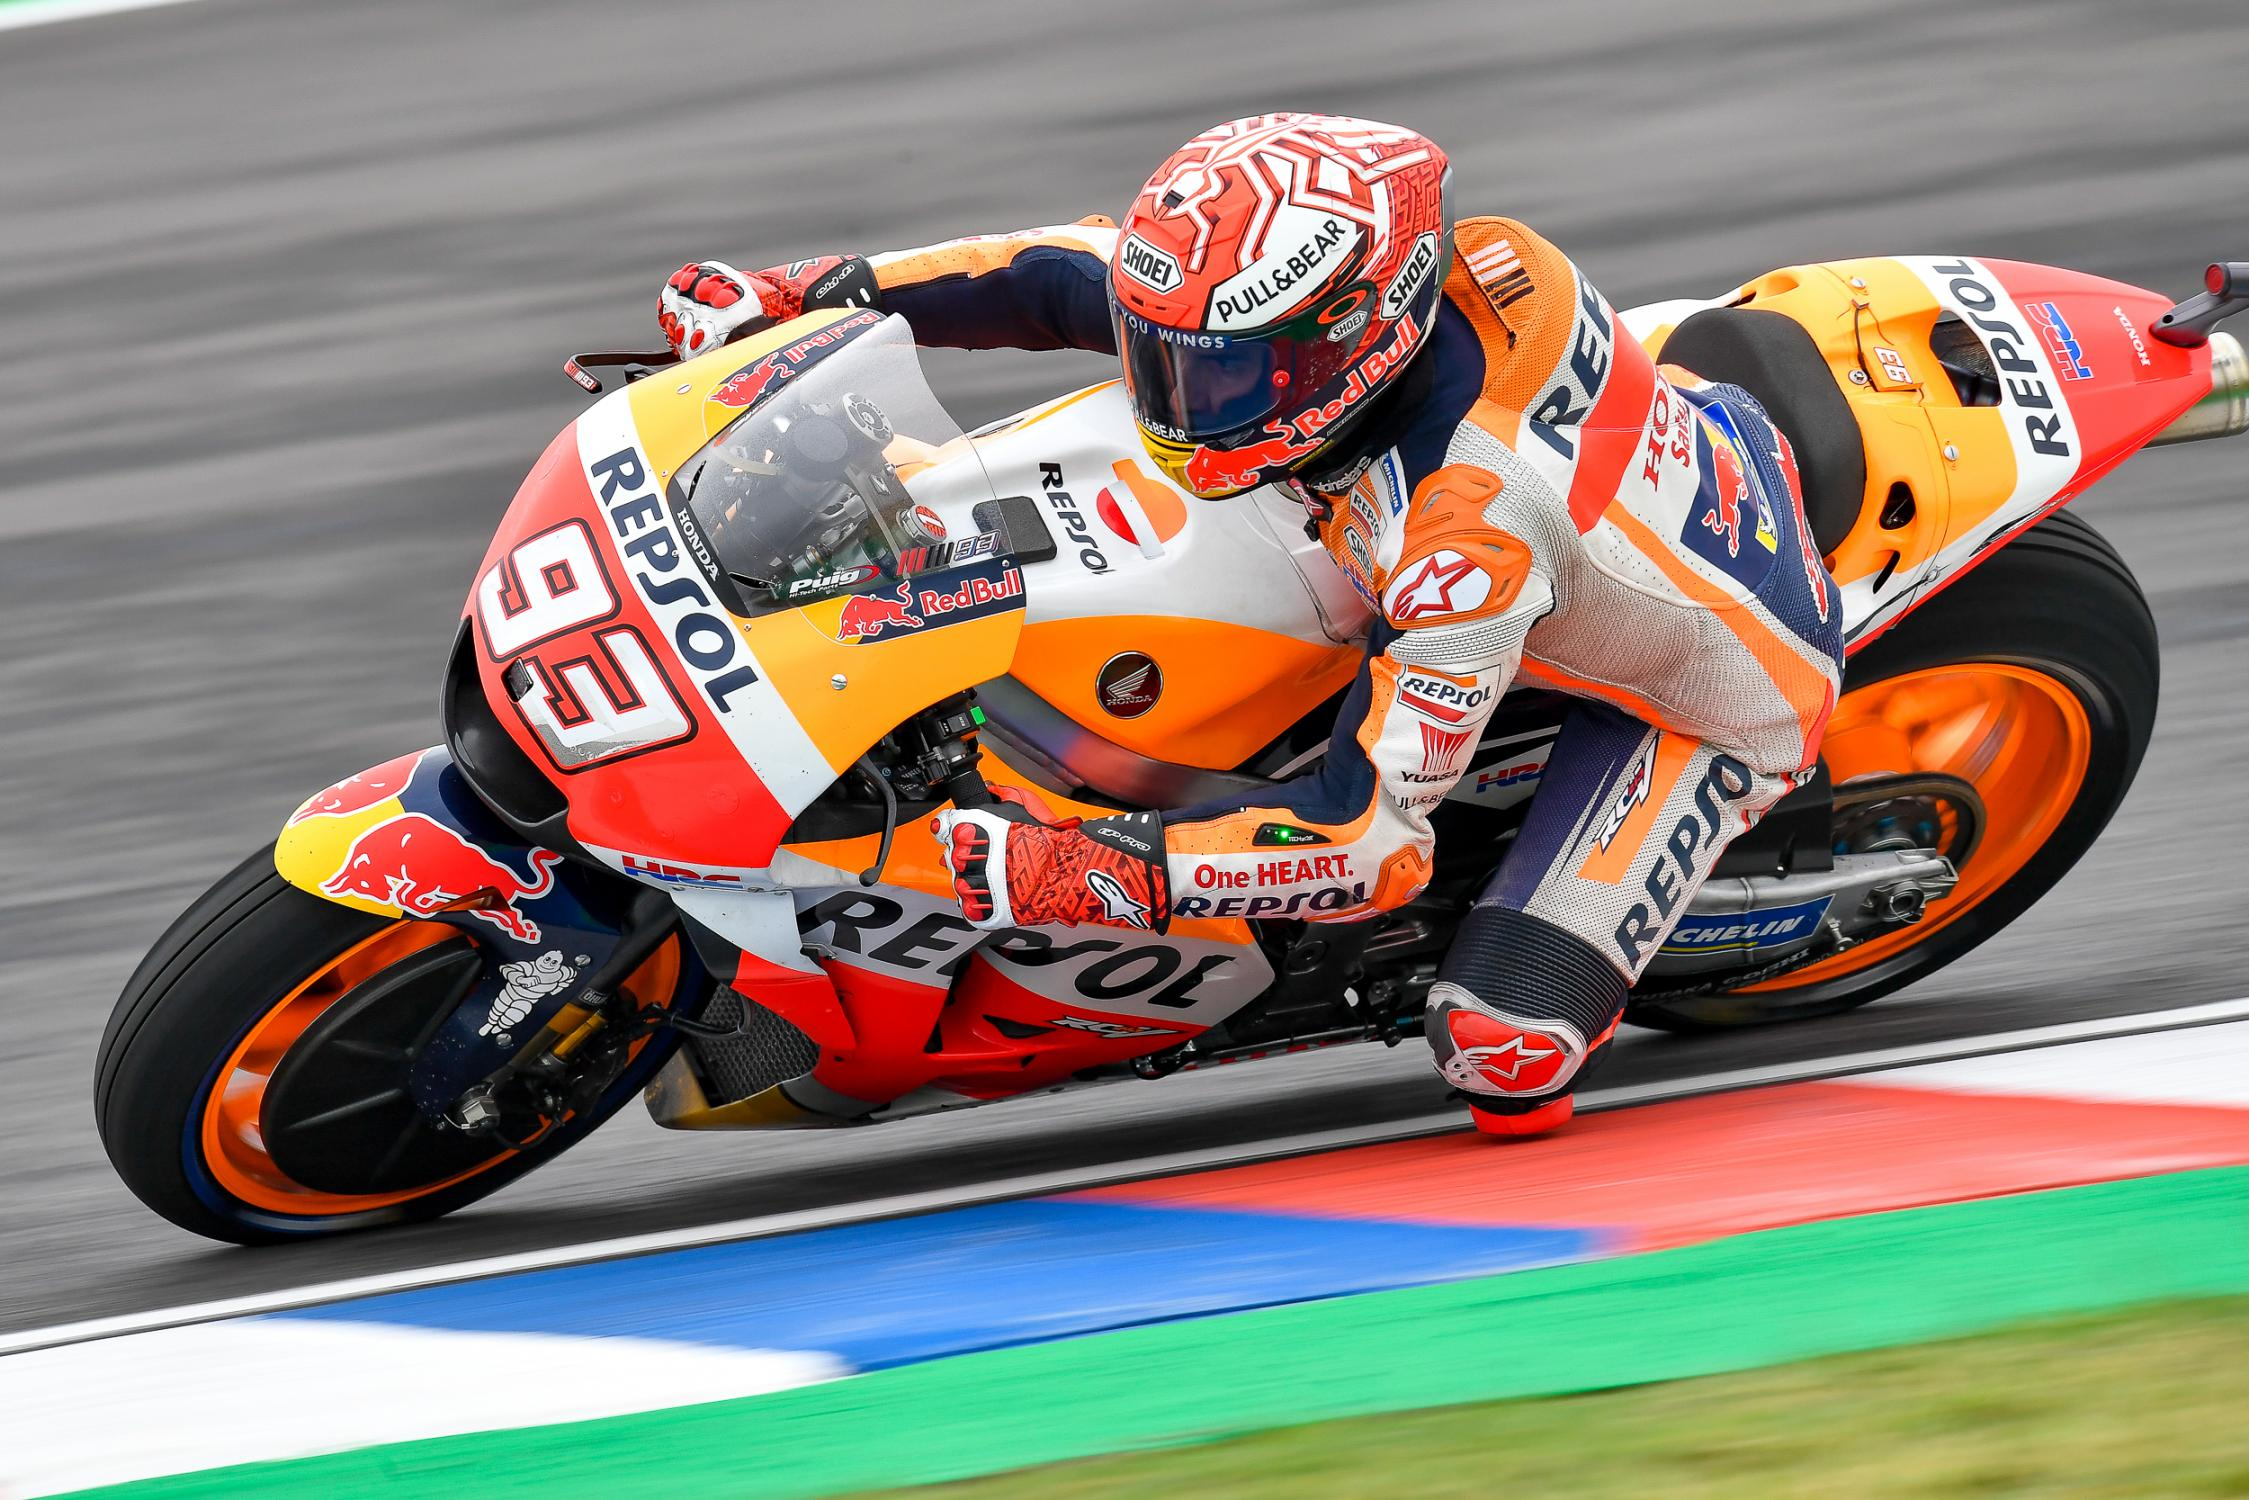 93-marc-marquez-esp_ds54369.gallery_full_top_fullscreen.jpg